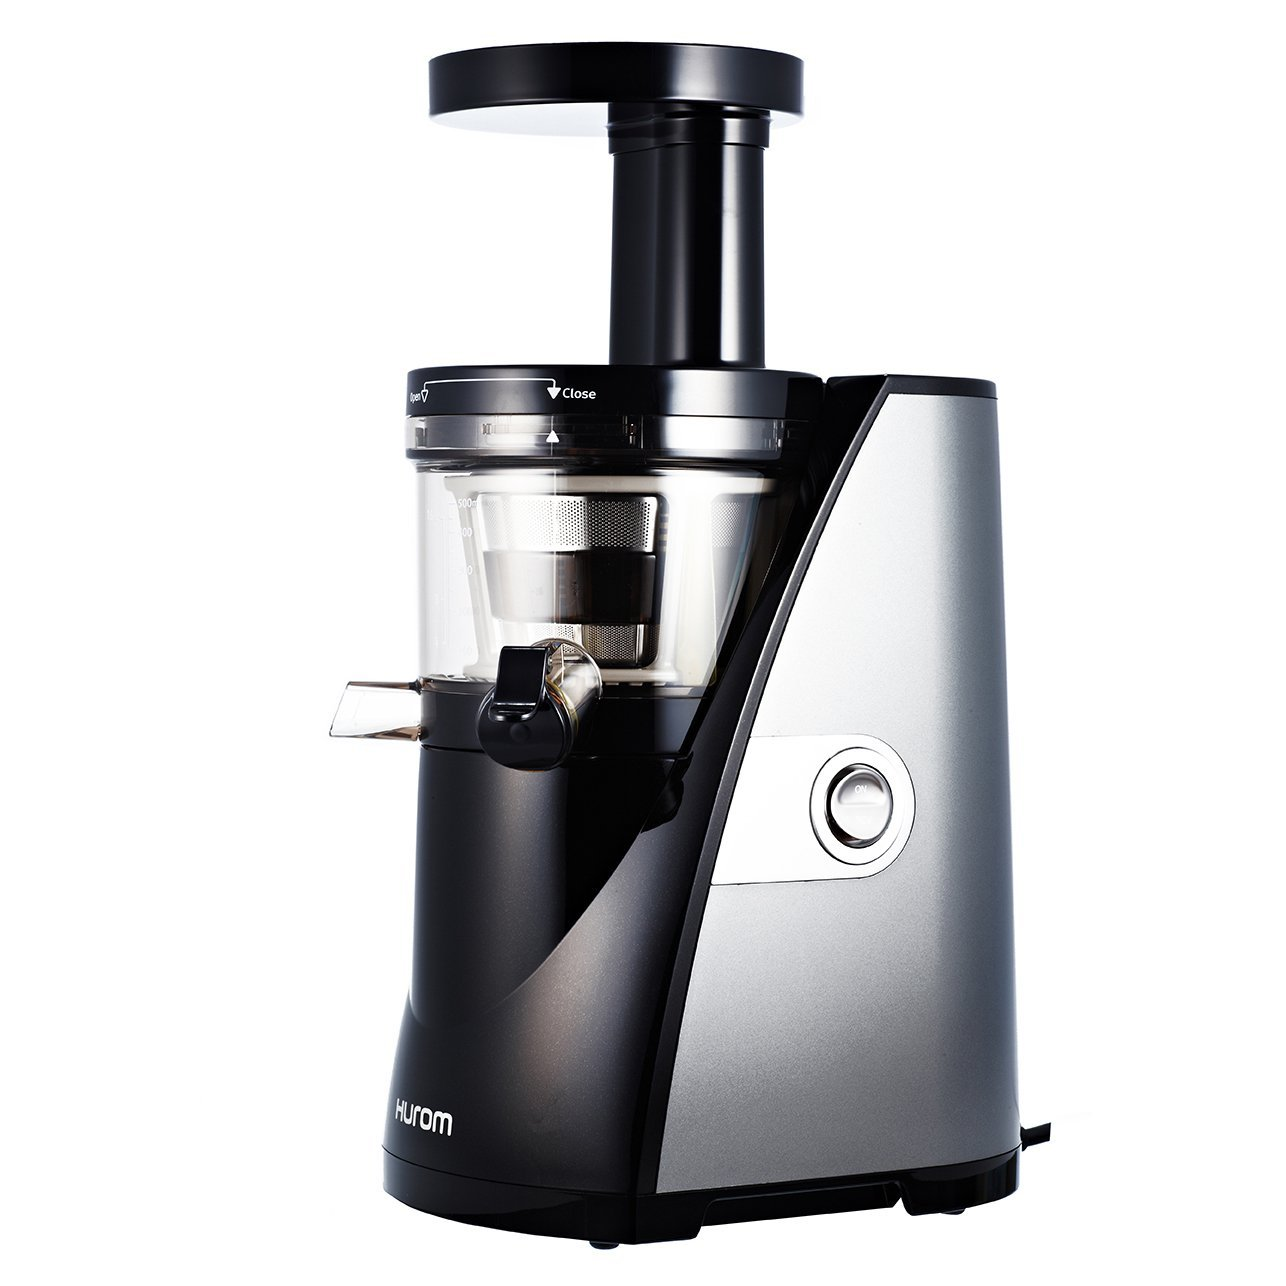 Hurom Slow Juicer Best Model : 5 Best Hurom Juicer Reviews UPDATED: 2018 The Home Savant